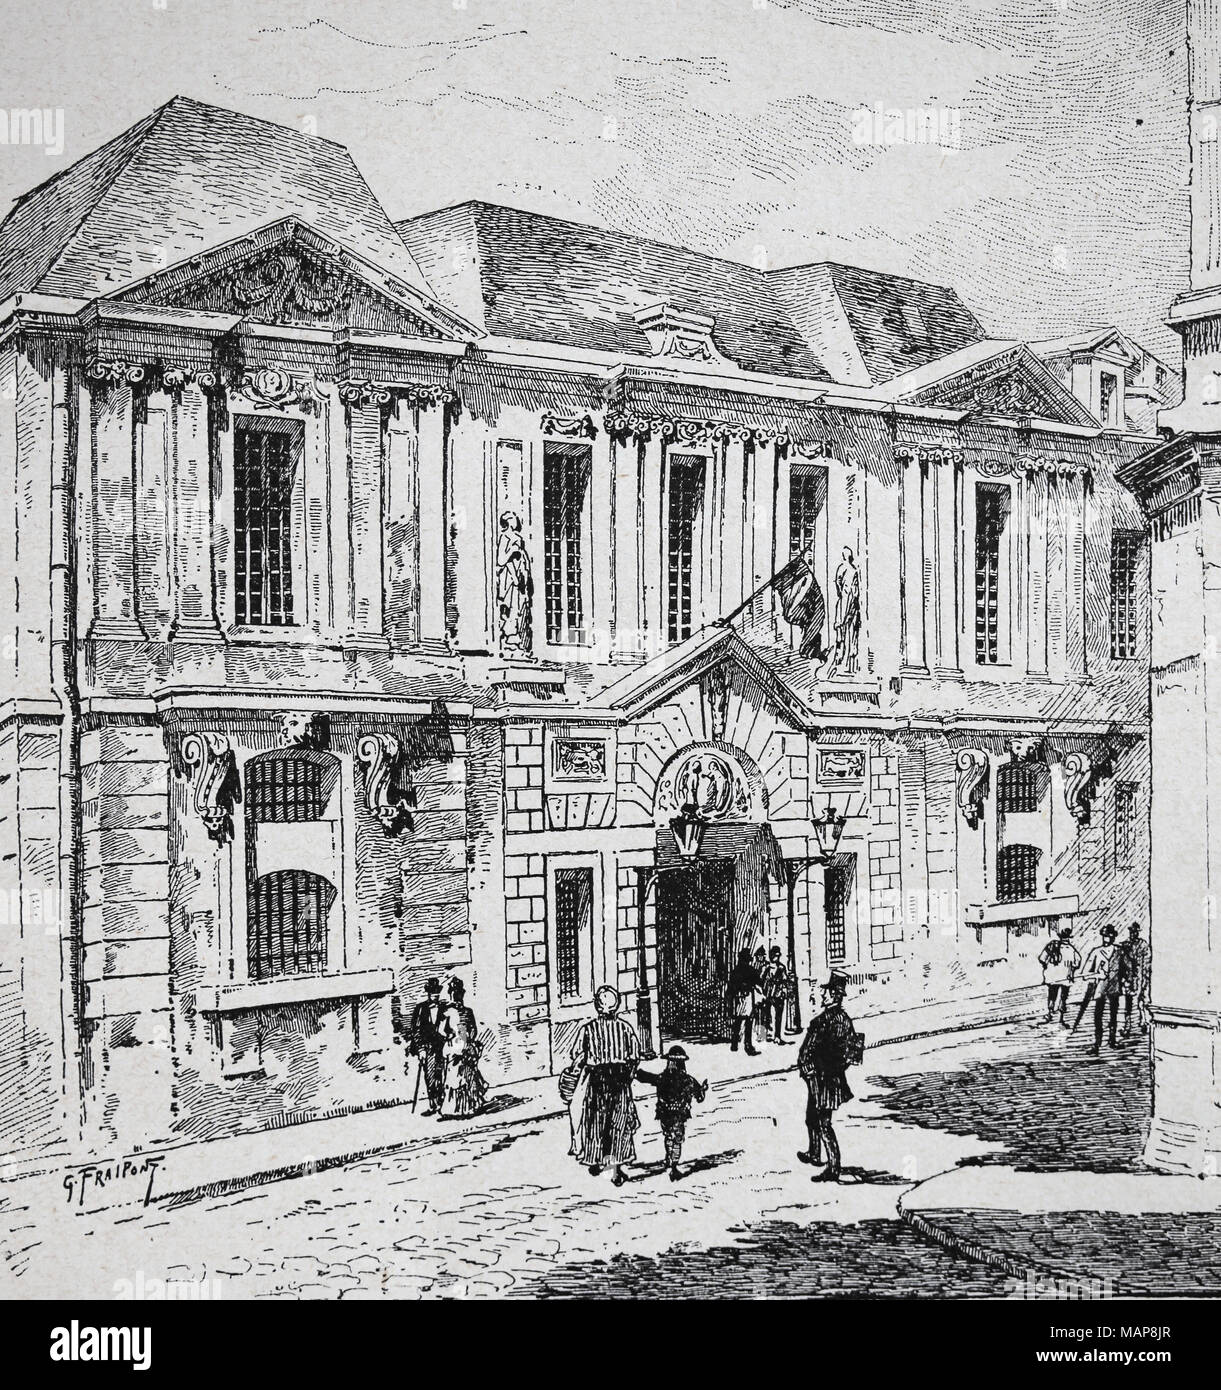 France. Paris. Historical archive at the Carnavalet hotel. Engraving, 19th century. - Stock Image